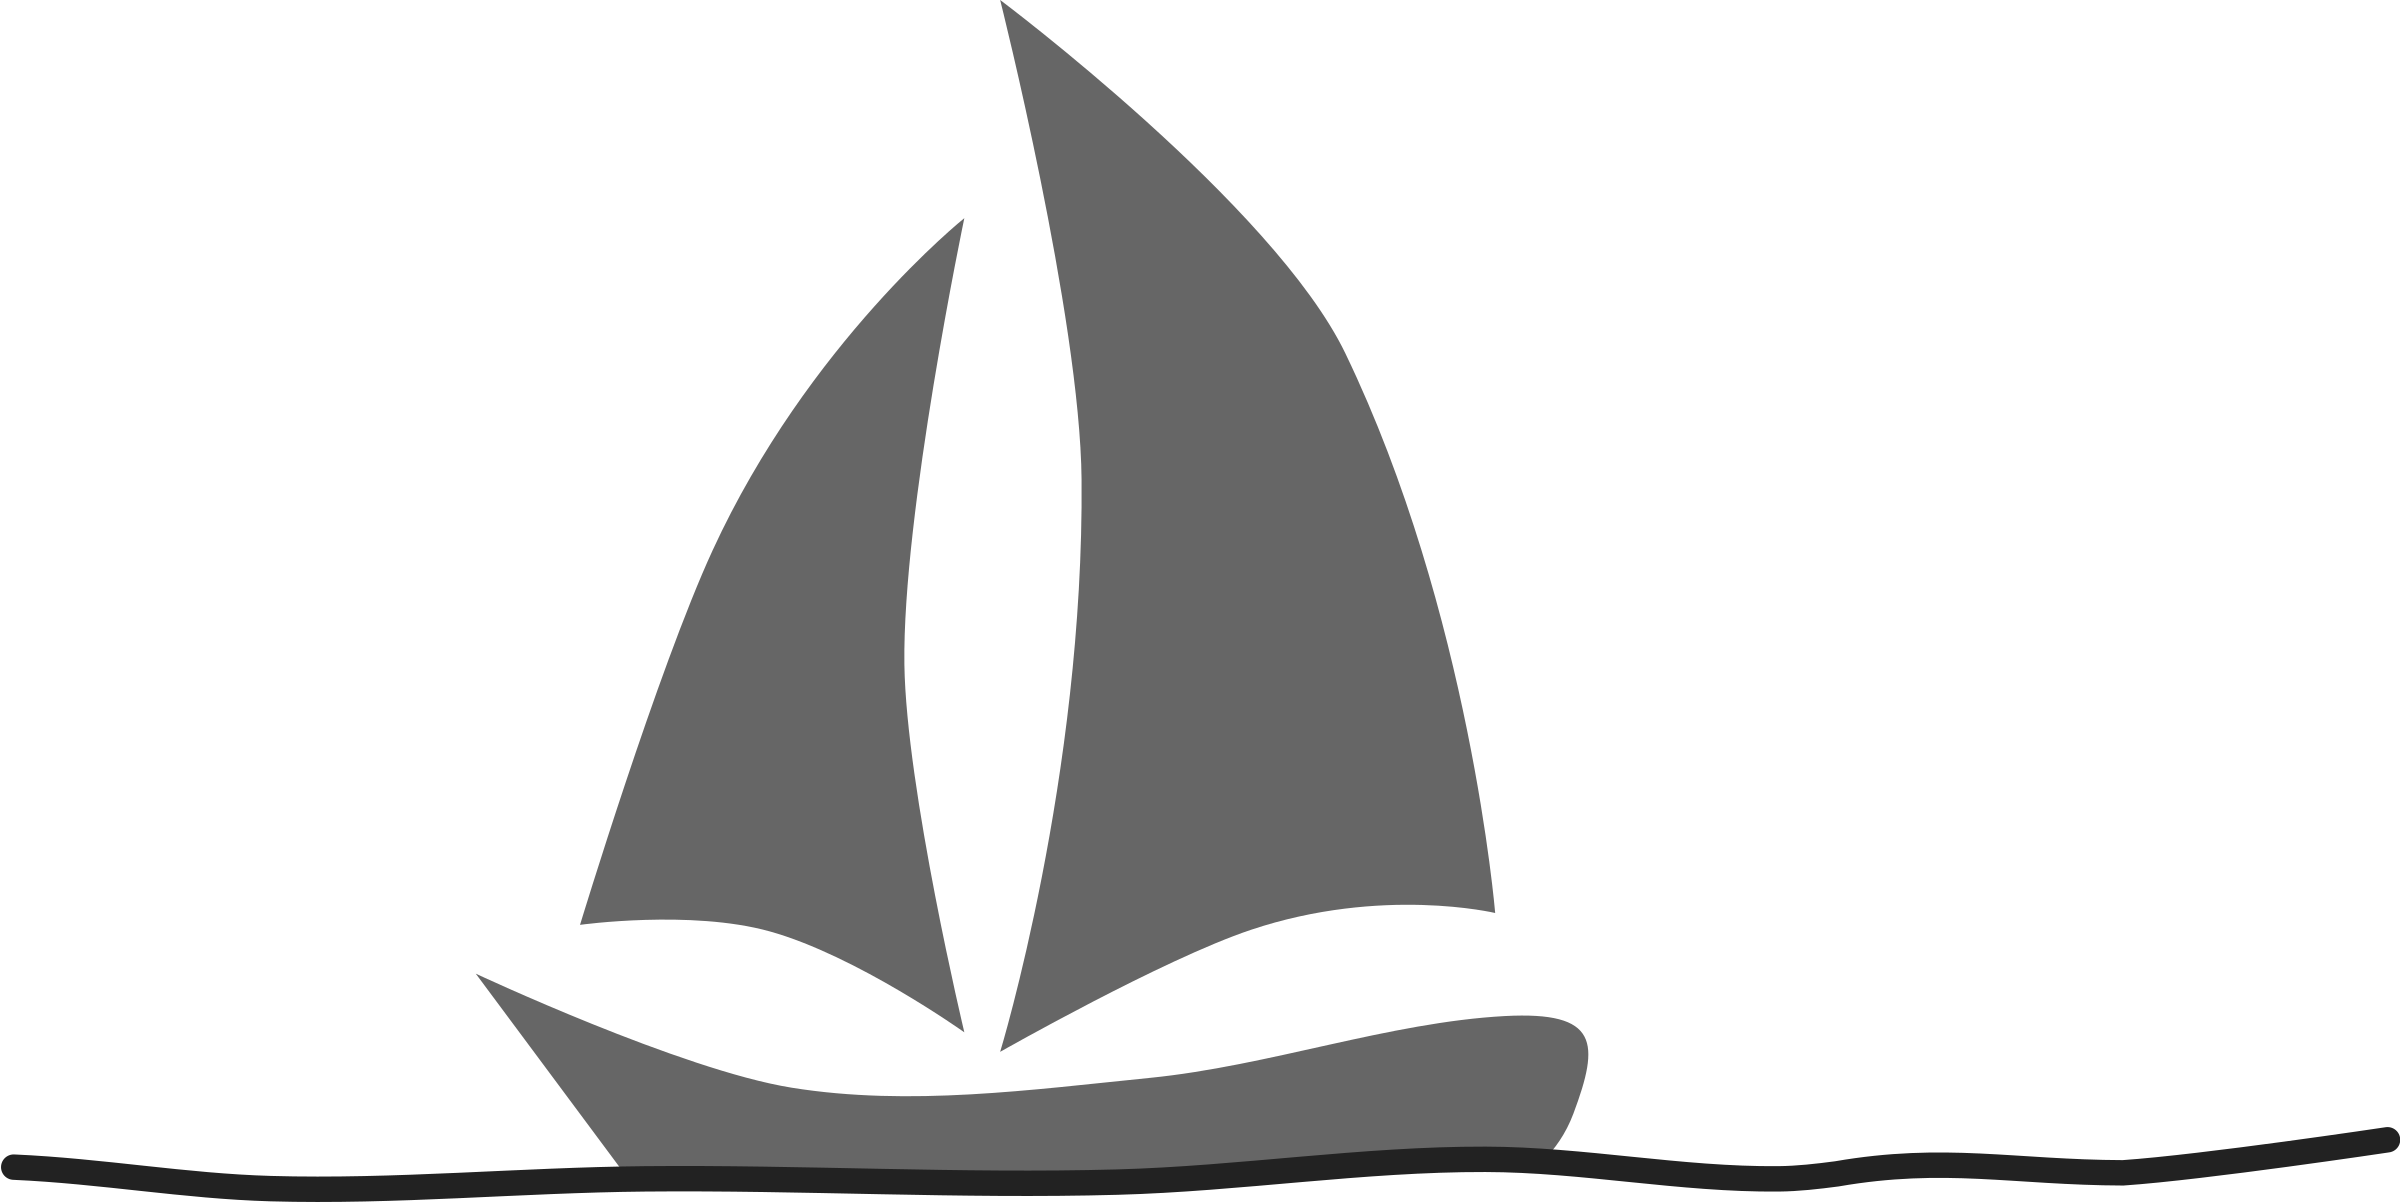 Velero. Sailboat by mediobit